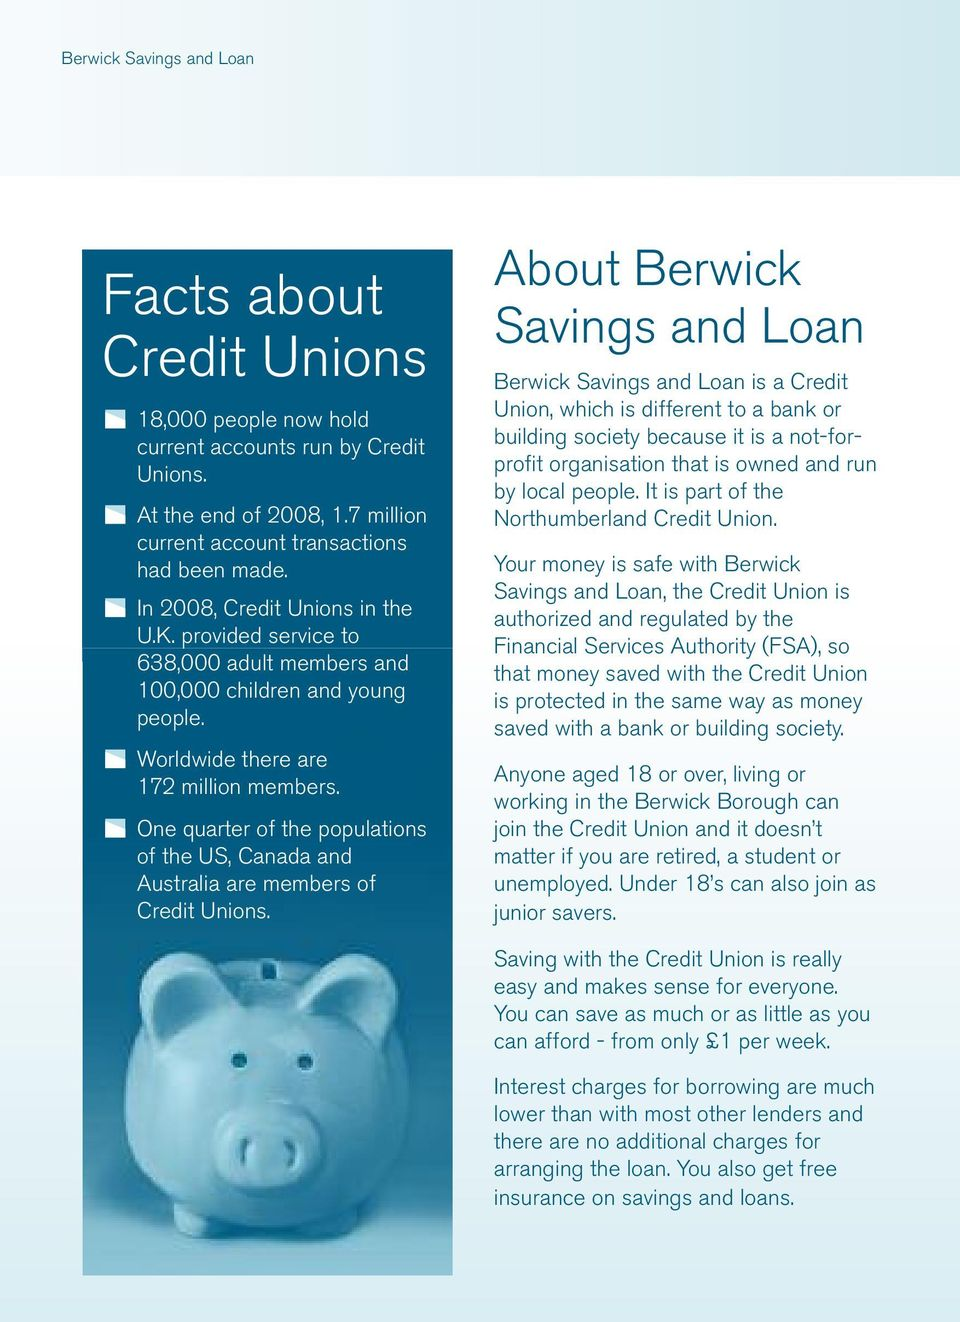 One quarter of the populations of the US, Canada and Australia are members of Credit Unions.